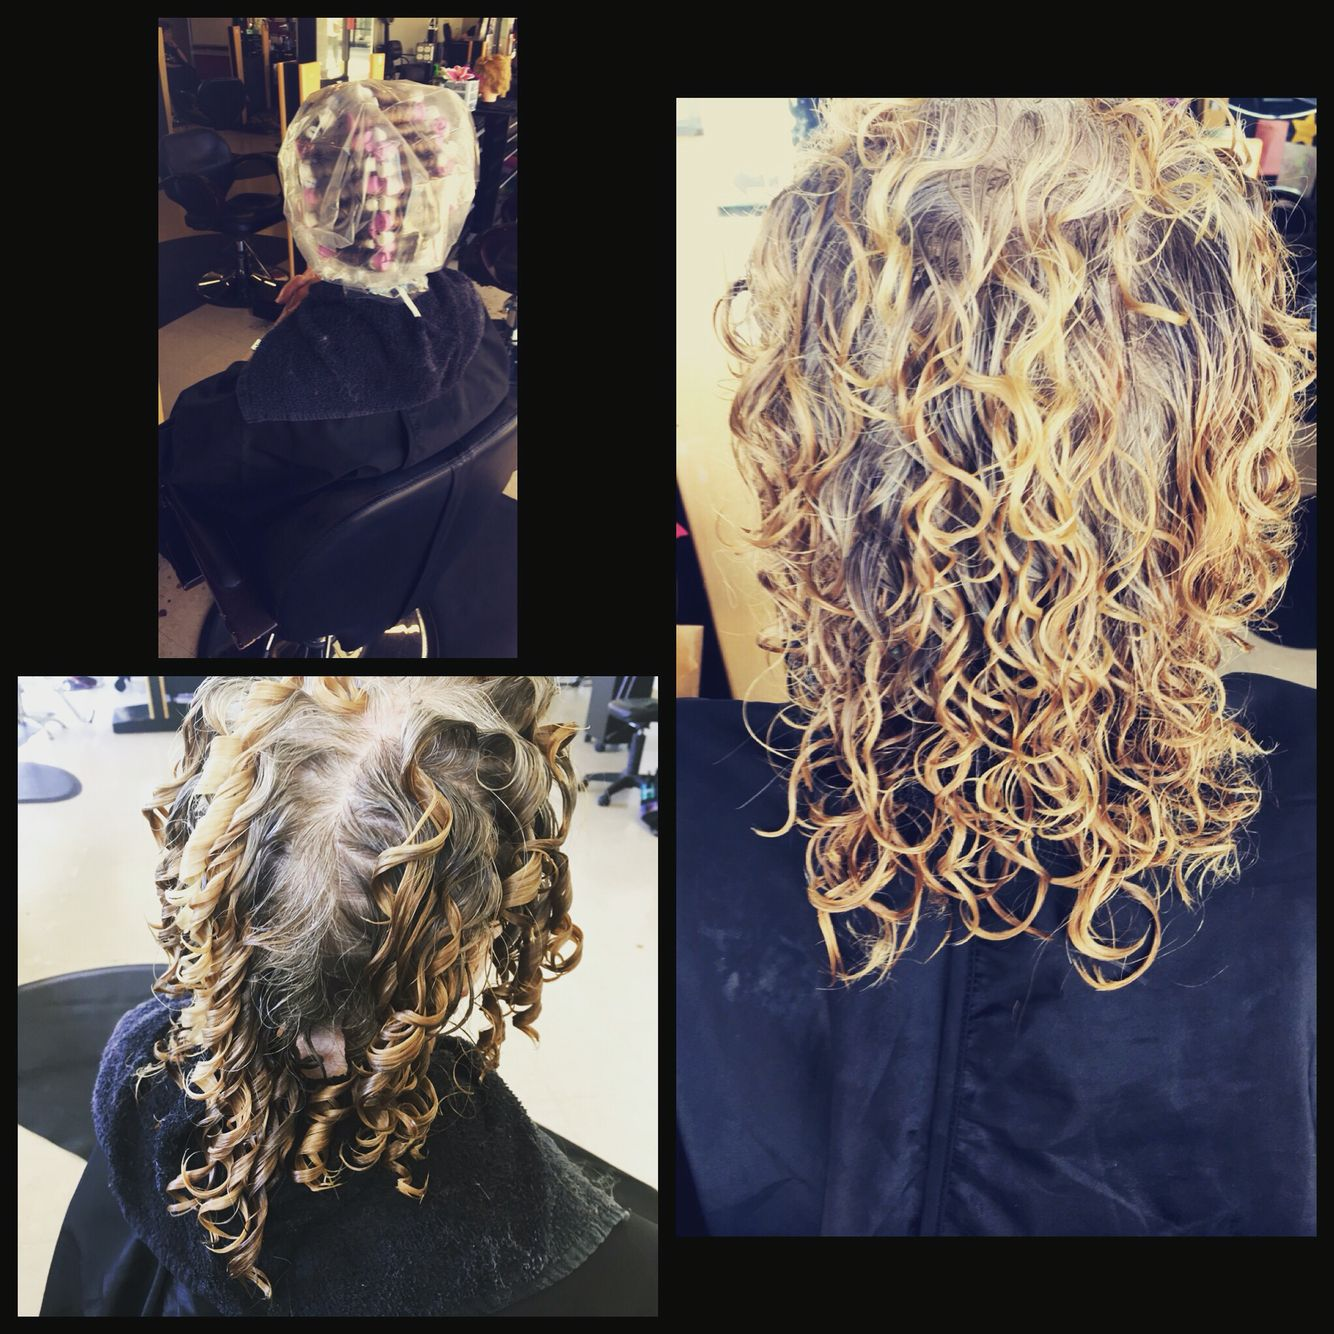 Curls Perm Done With Purple And White Perm Rods Really Long Hair Permed Hairstyles Types Of Curls